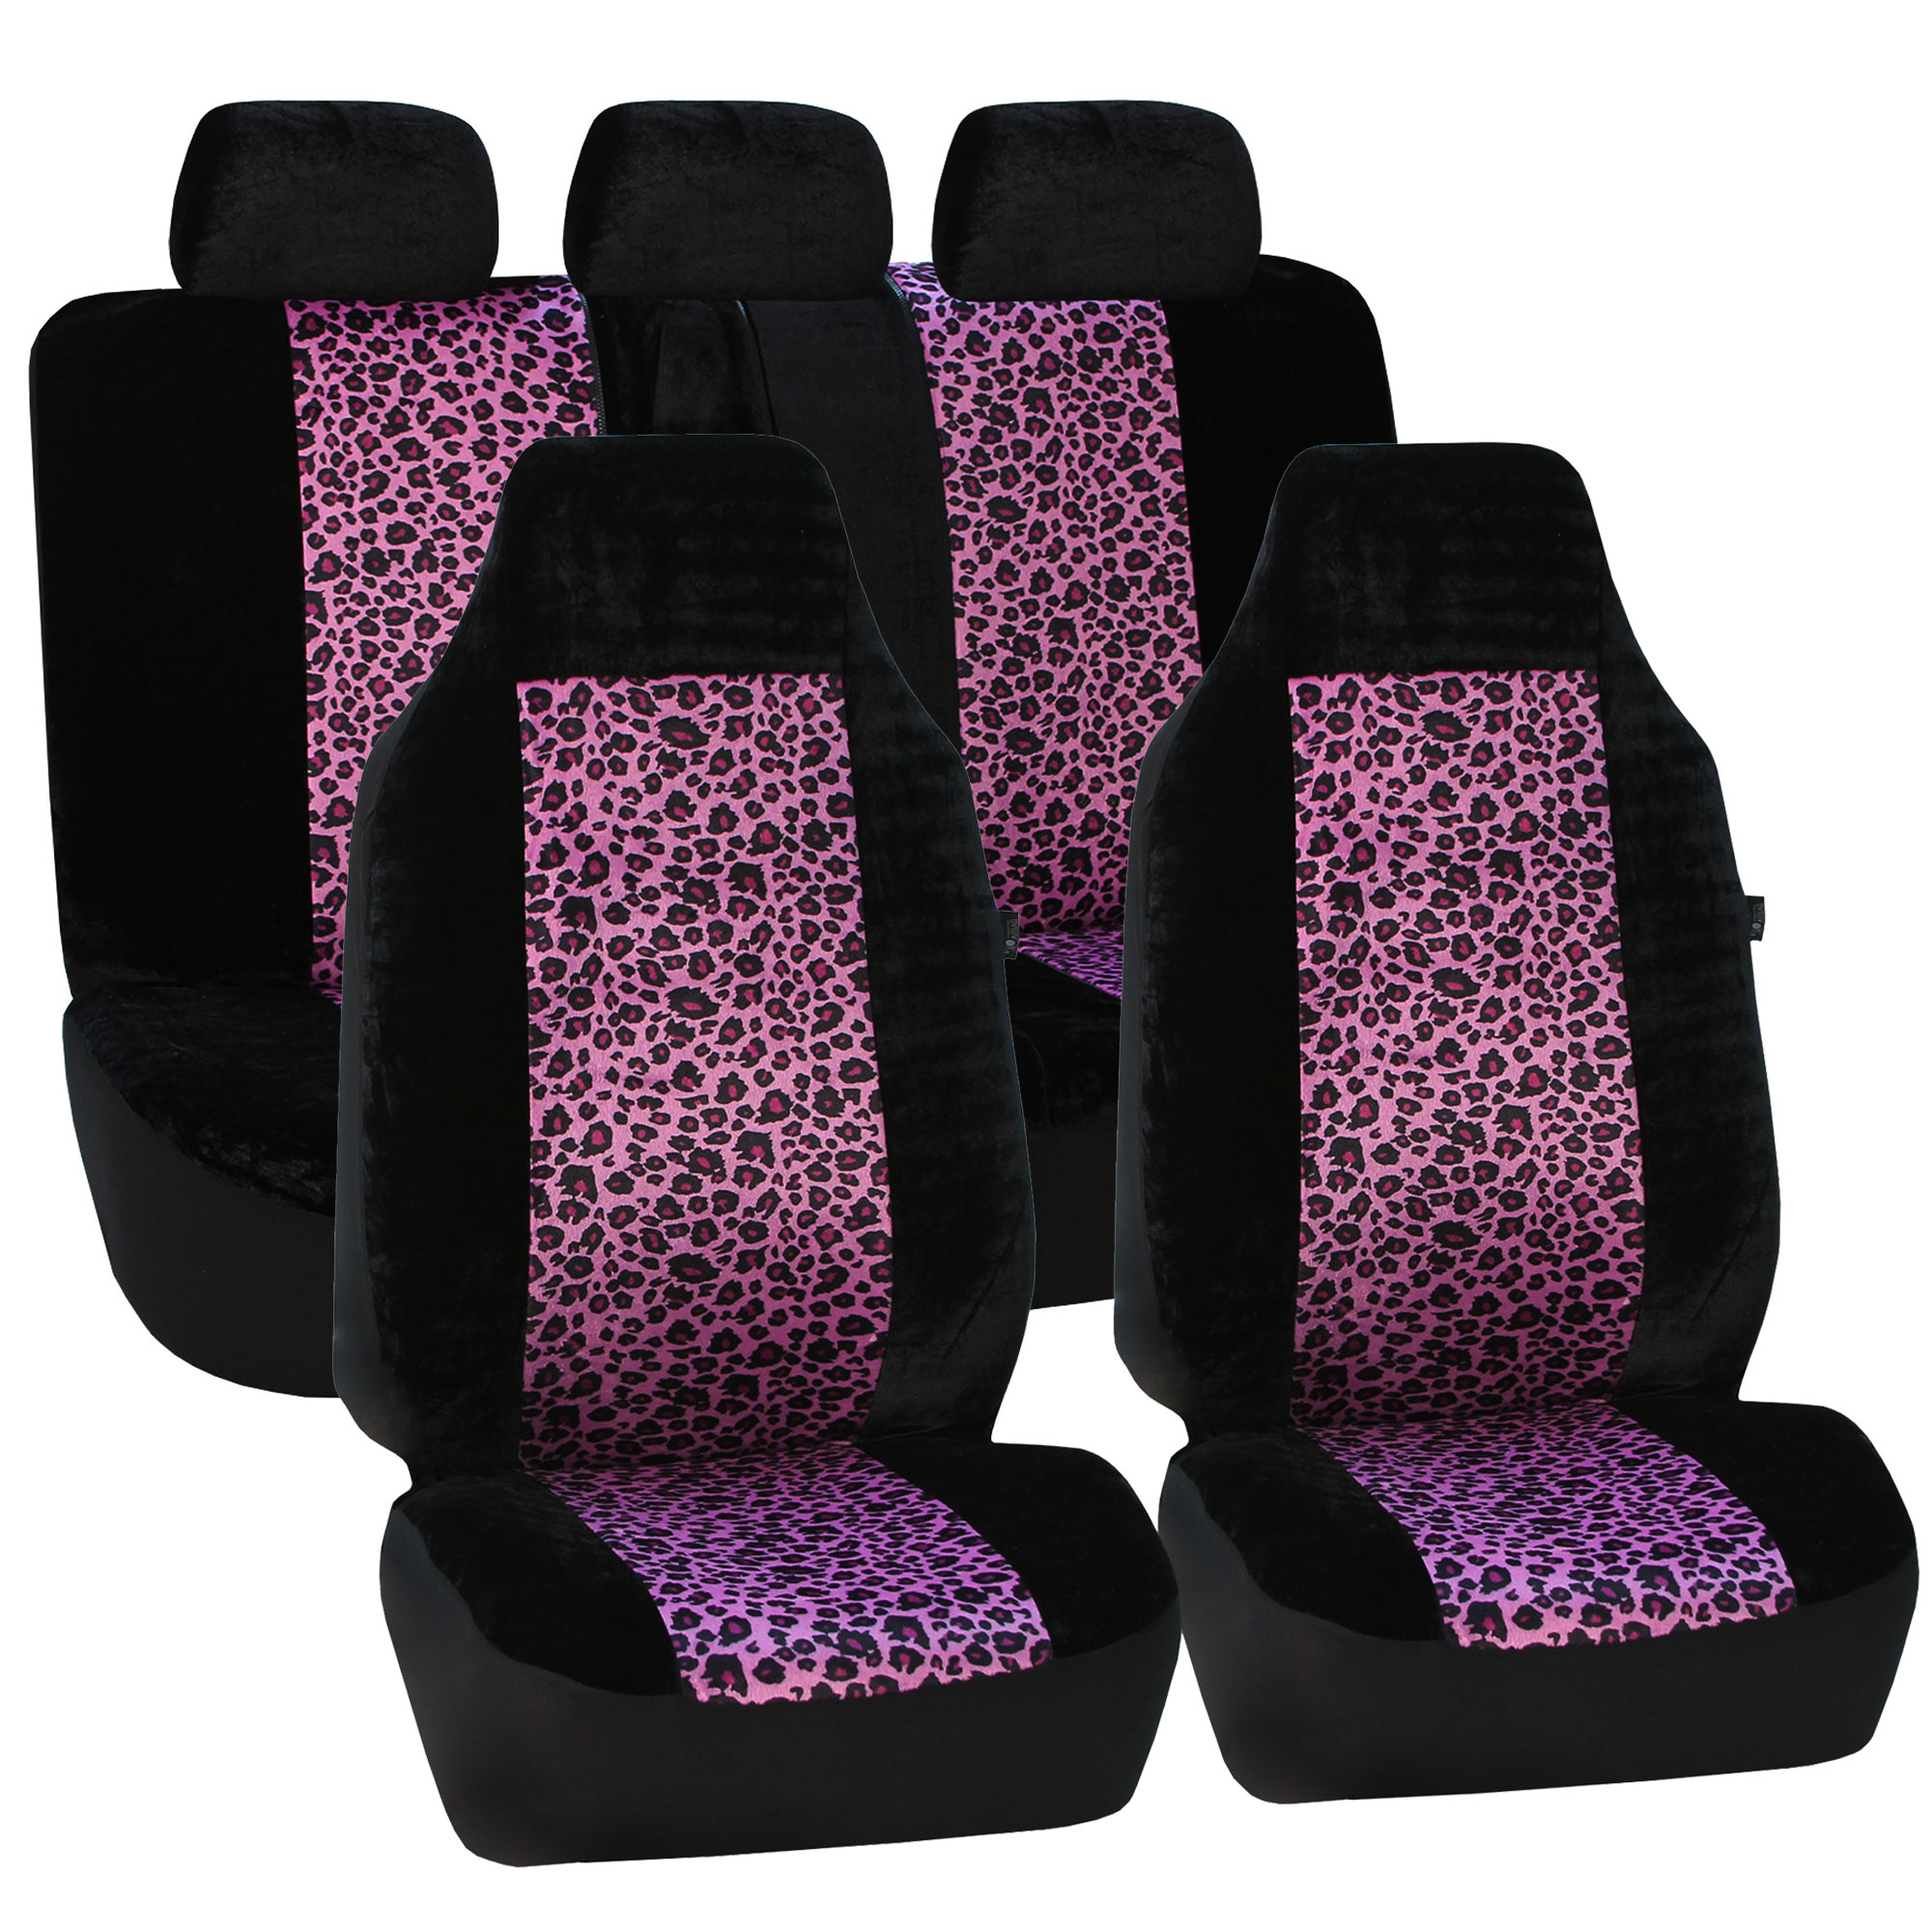 FH Group Purple Leopard Animal Print Car Seat Covers, Airbag Compatible and Split Bench, Full Set